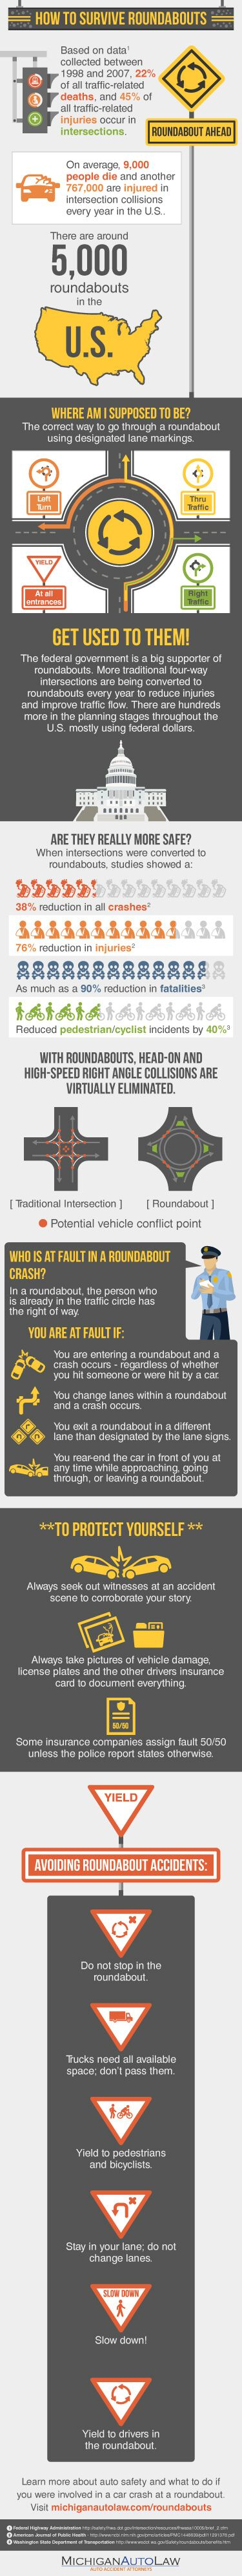 Roundabout Driving Safety and Resources